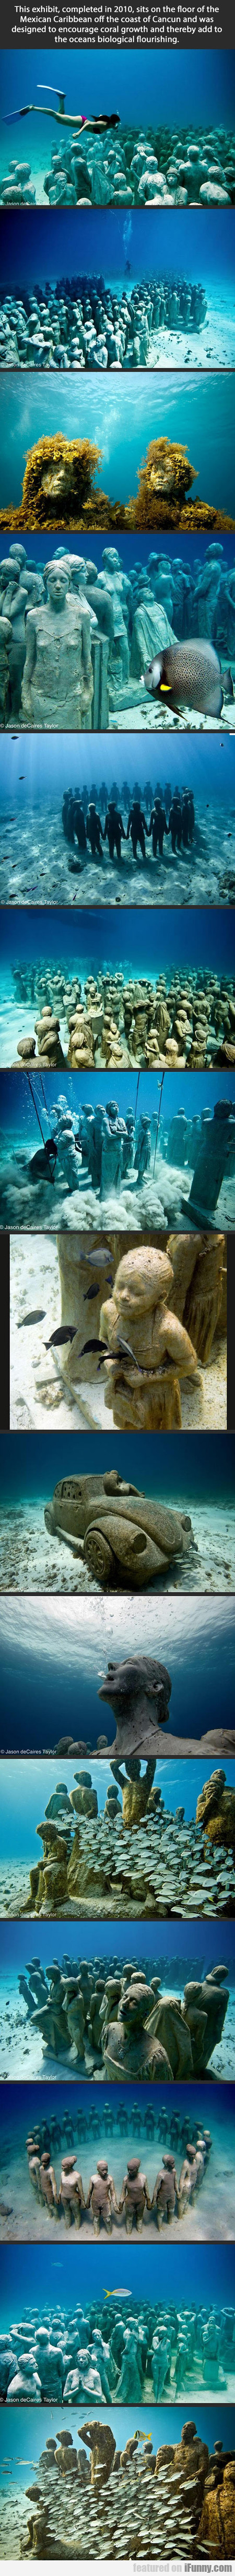 Awesome Underwater Museum